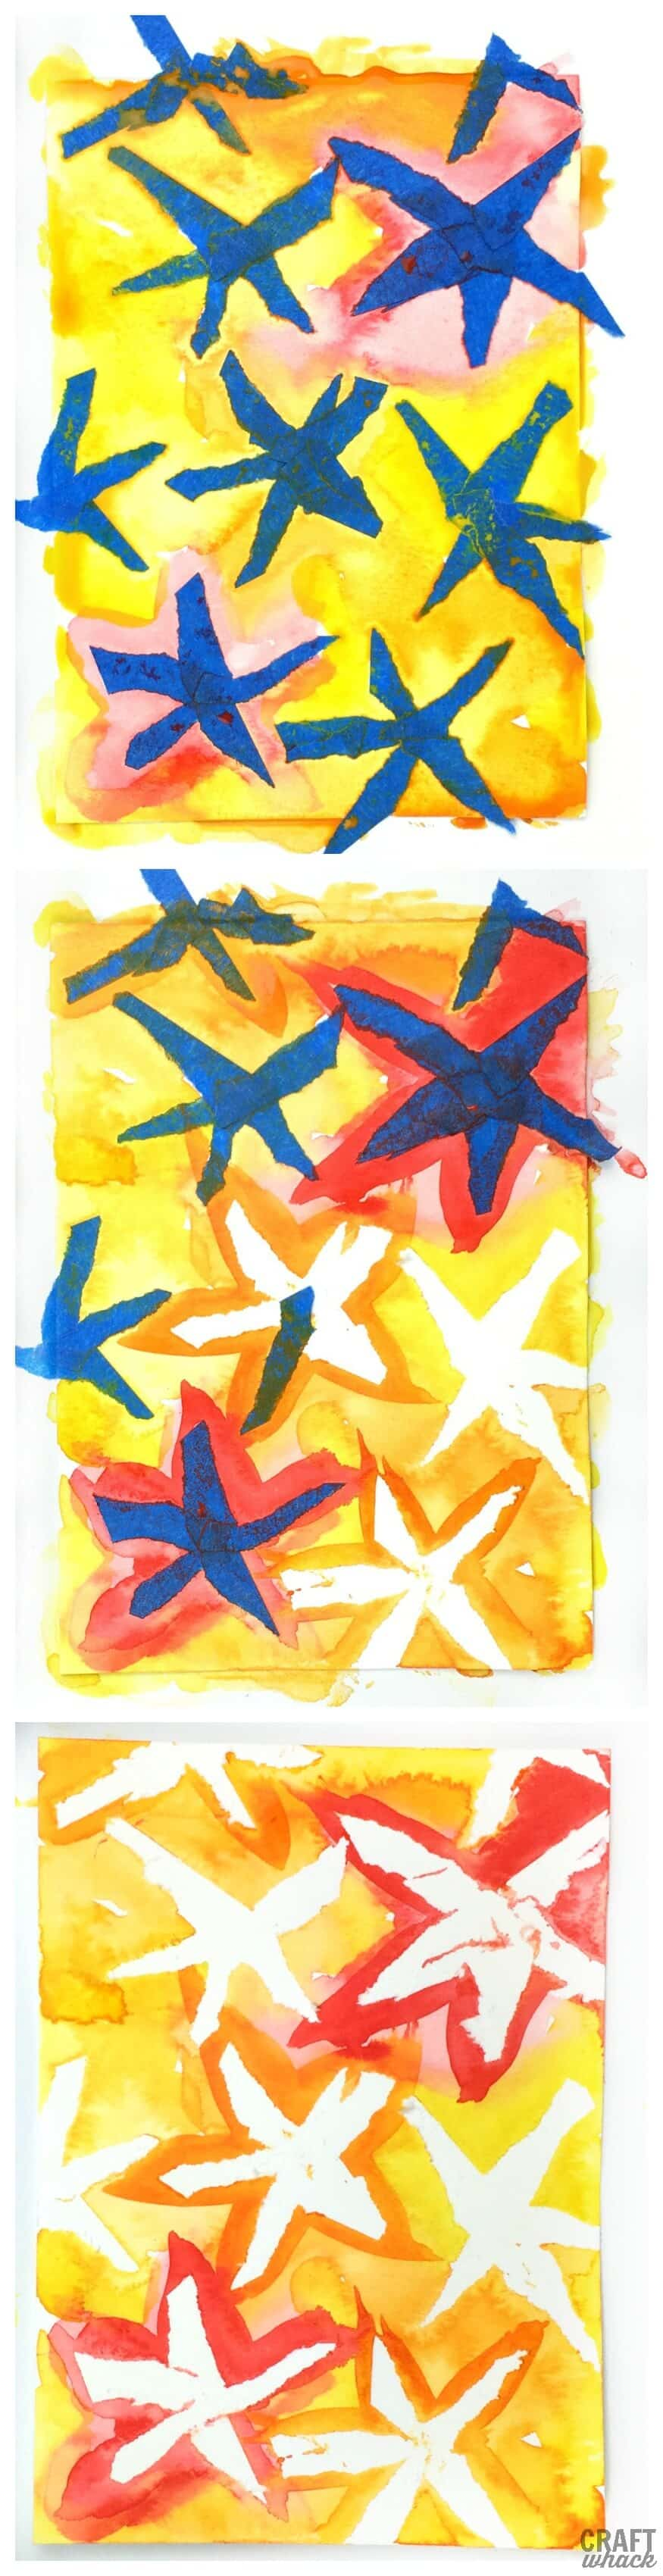 Tape resist watercolor flower pattern